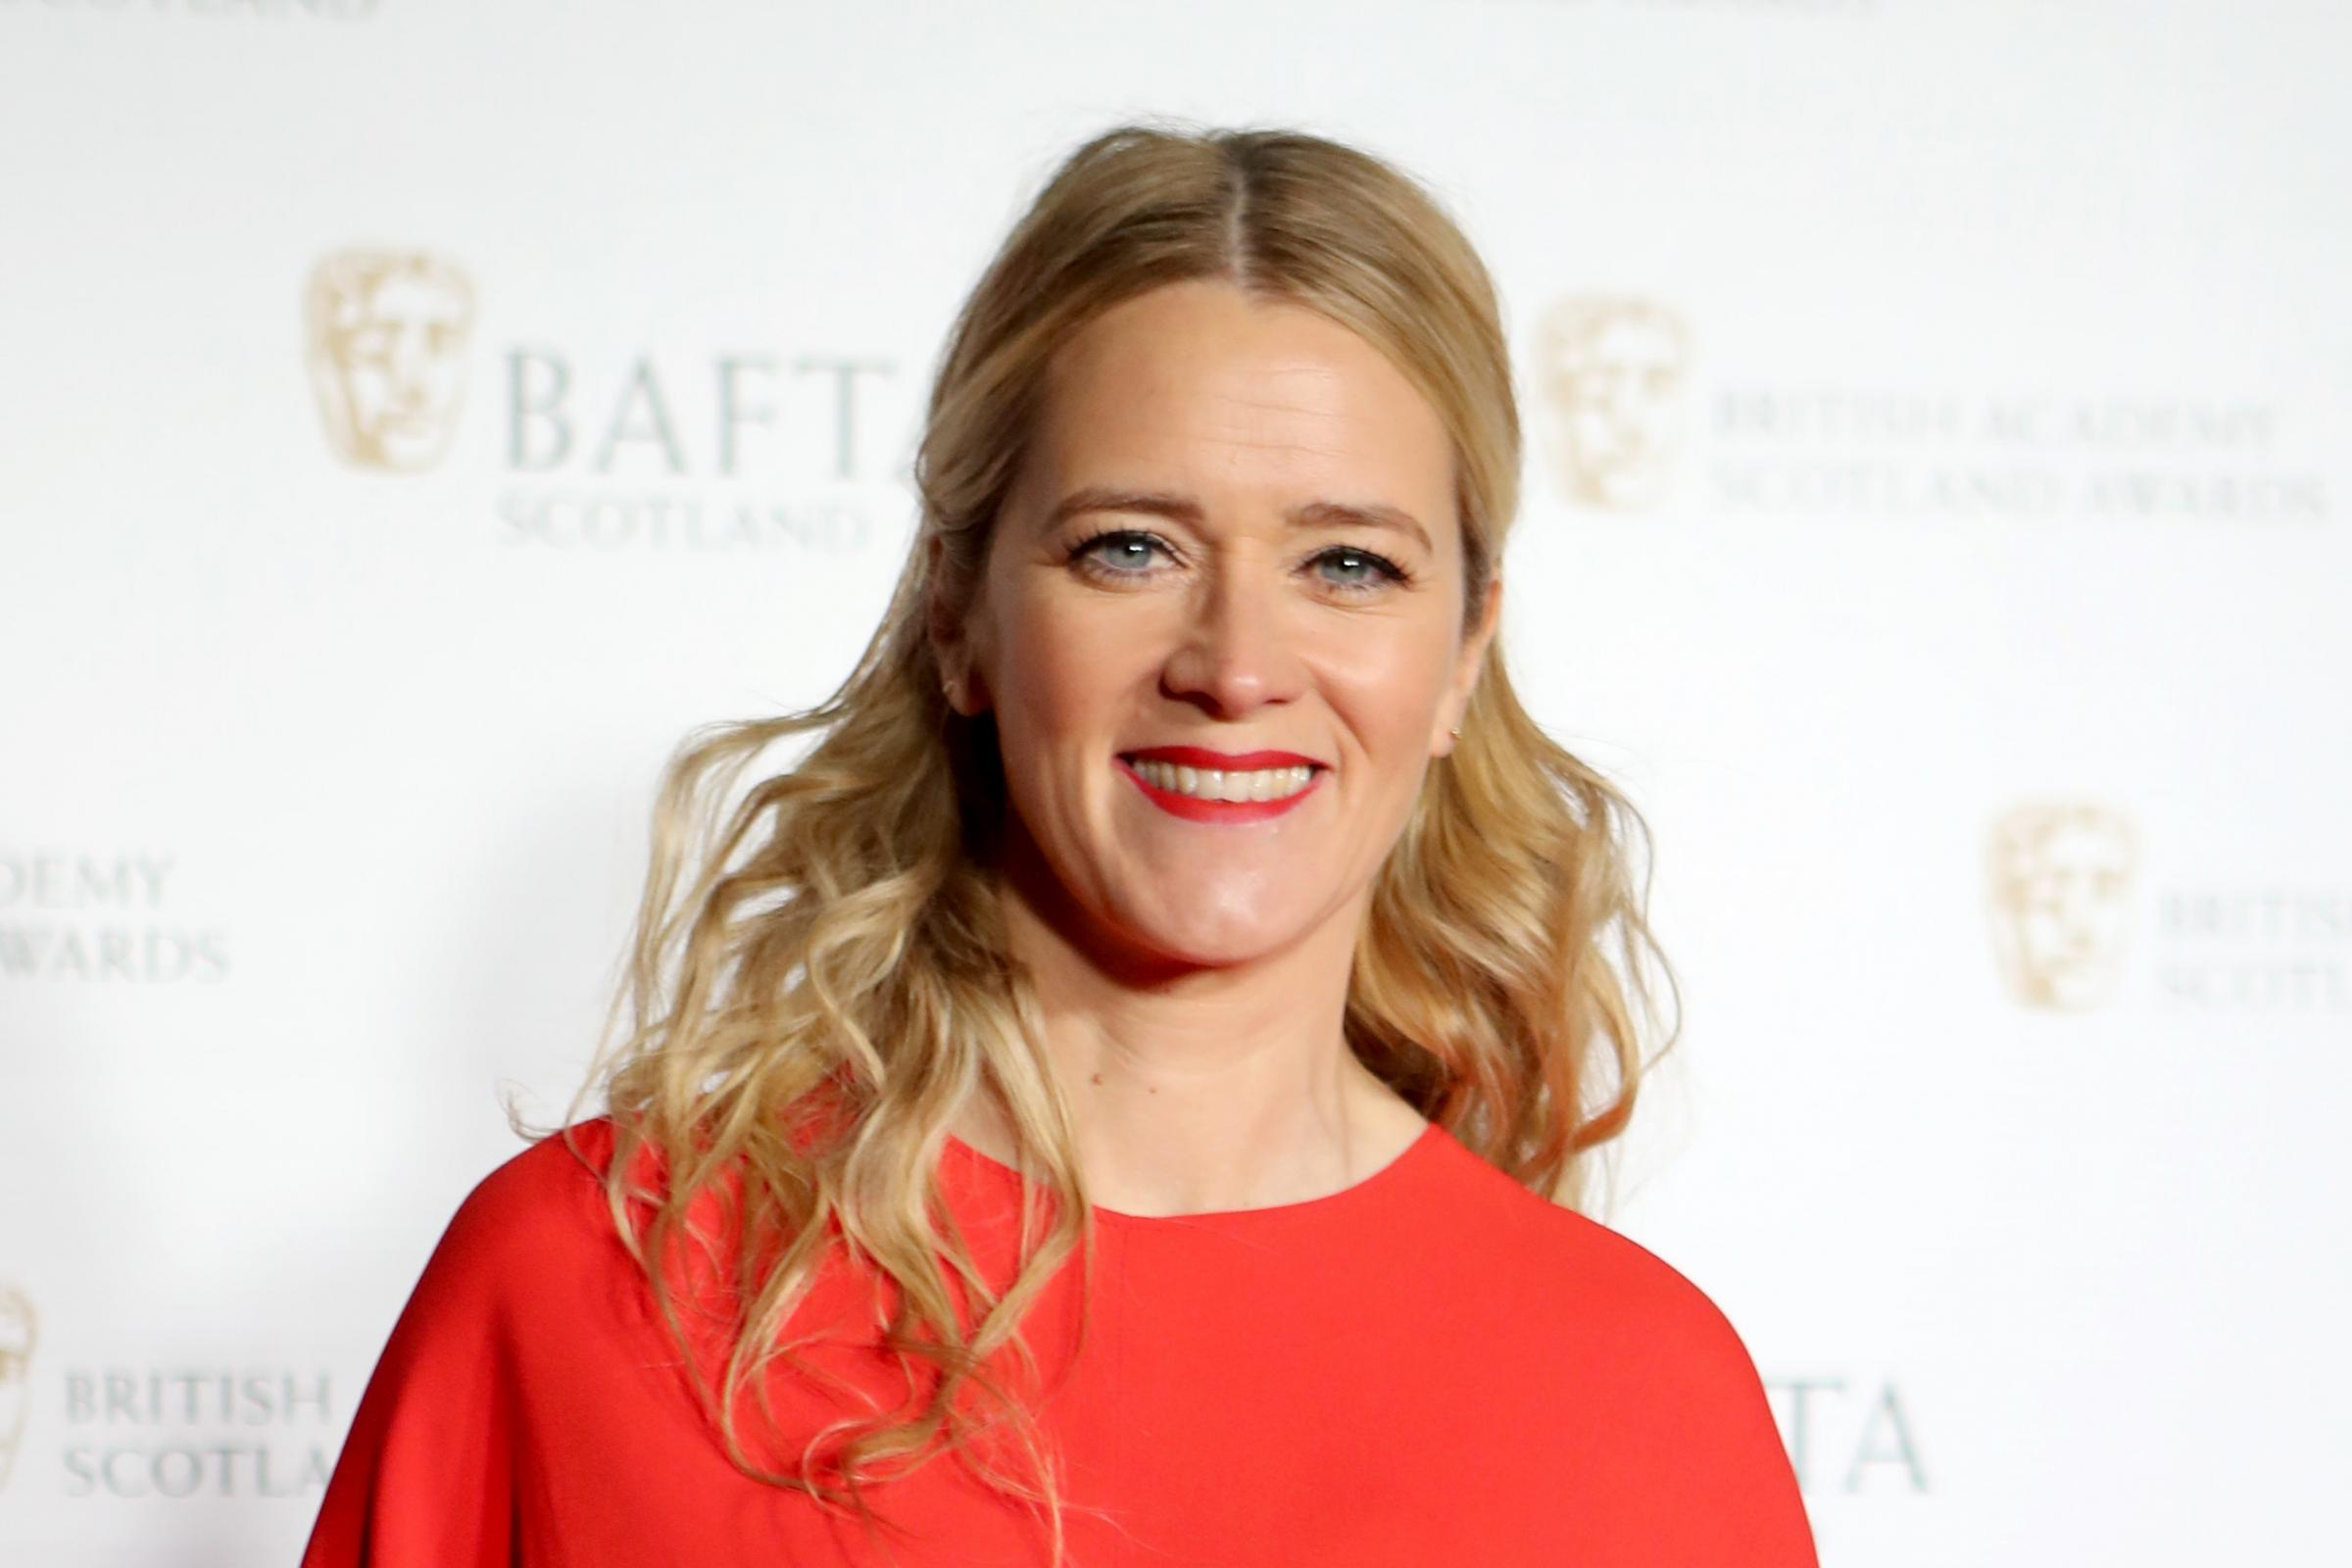 Edith Bowman and Dermot O'Leary will host the Bafta red carpet live show (Jane Barlow/PA)